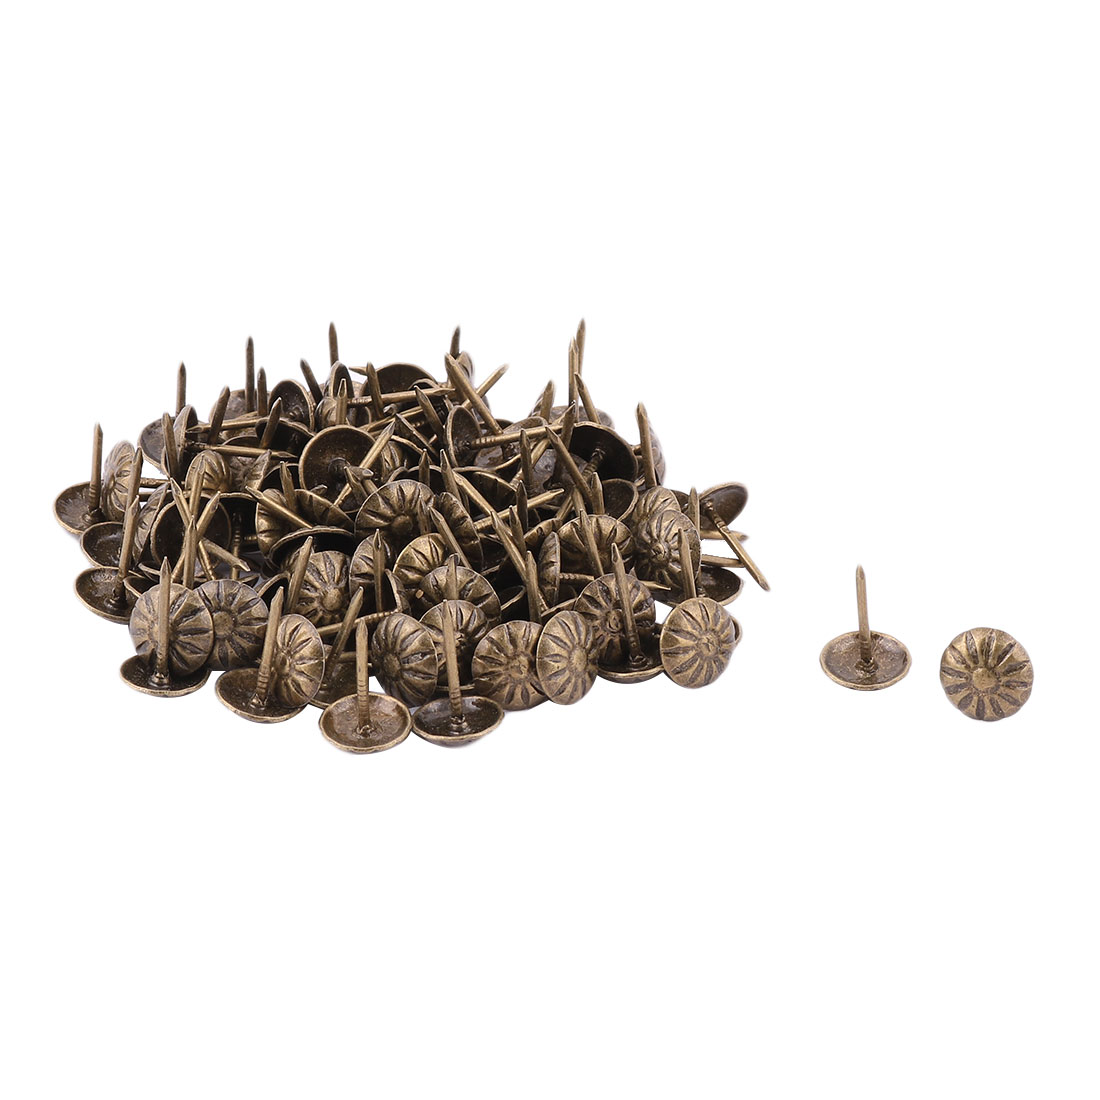 Metal Flower Design Round Head Furniture Tack Nail Pushpin Bronze Tone 110pcs